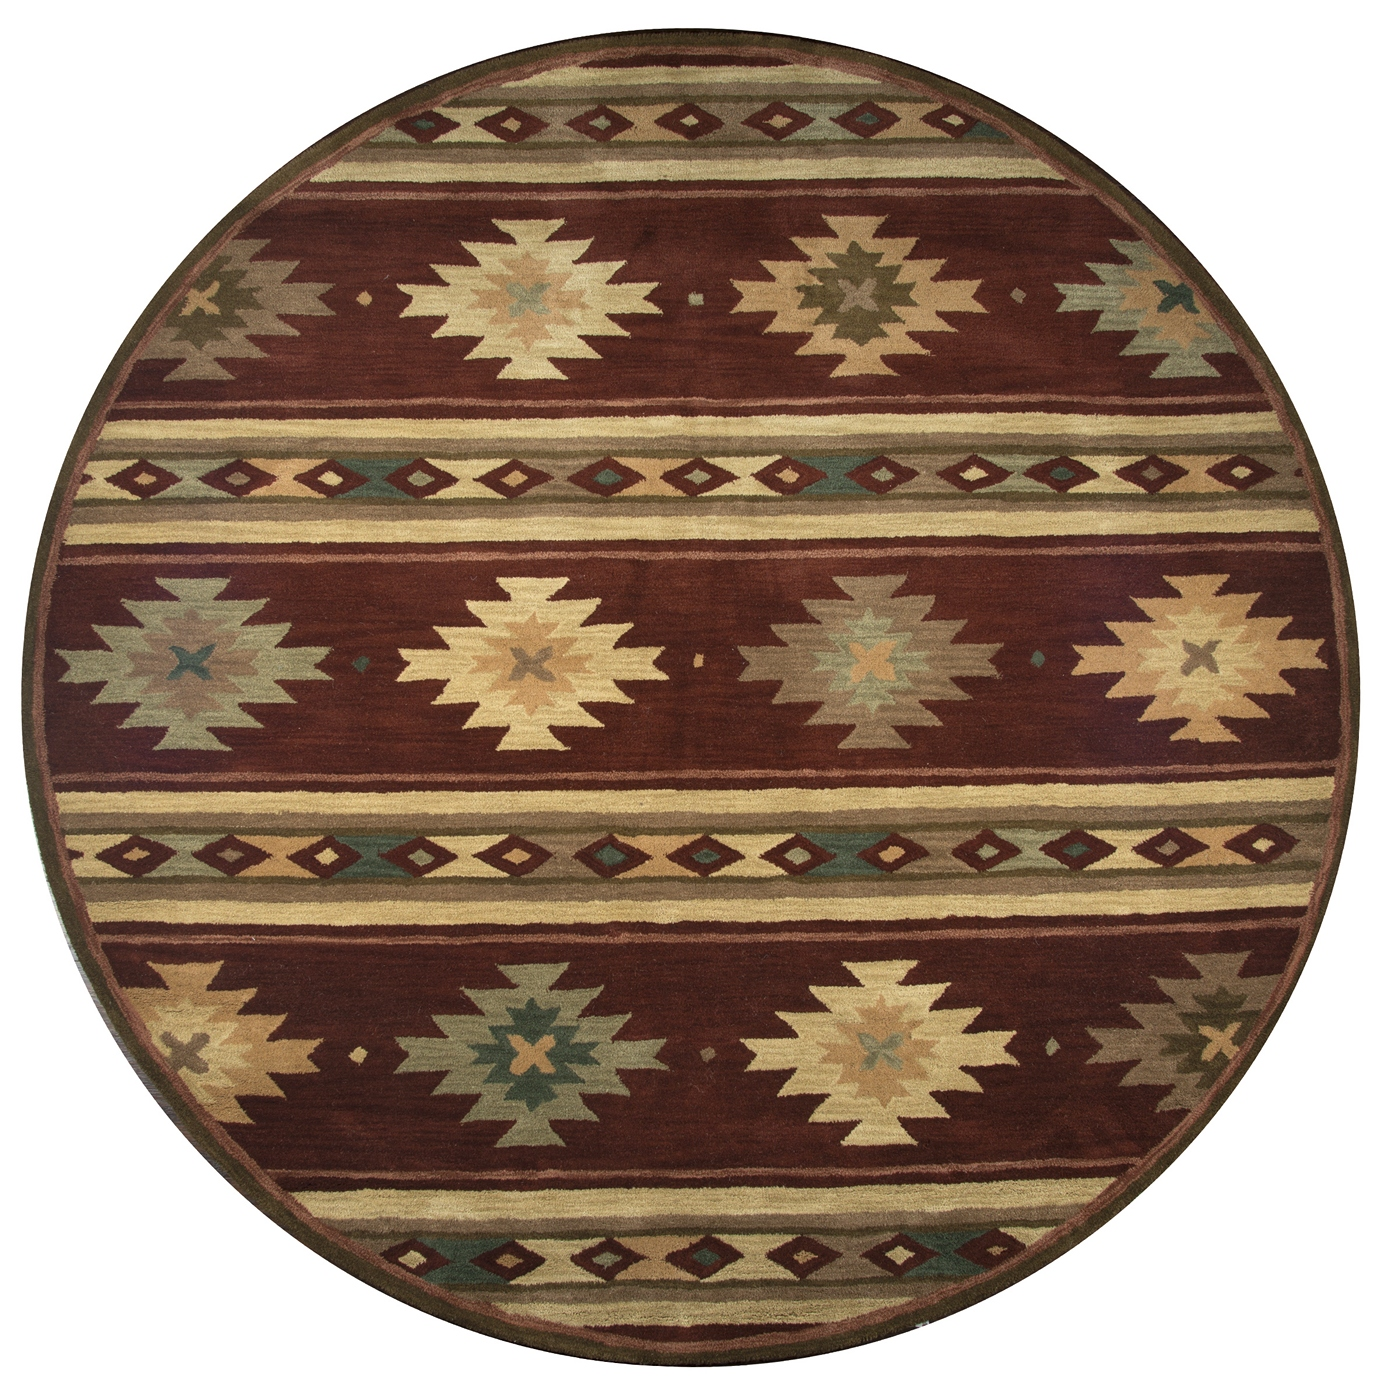 Southwest Tribal Ornamental Wool Round Rug In Red Tan Sage